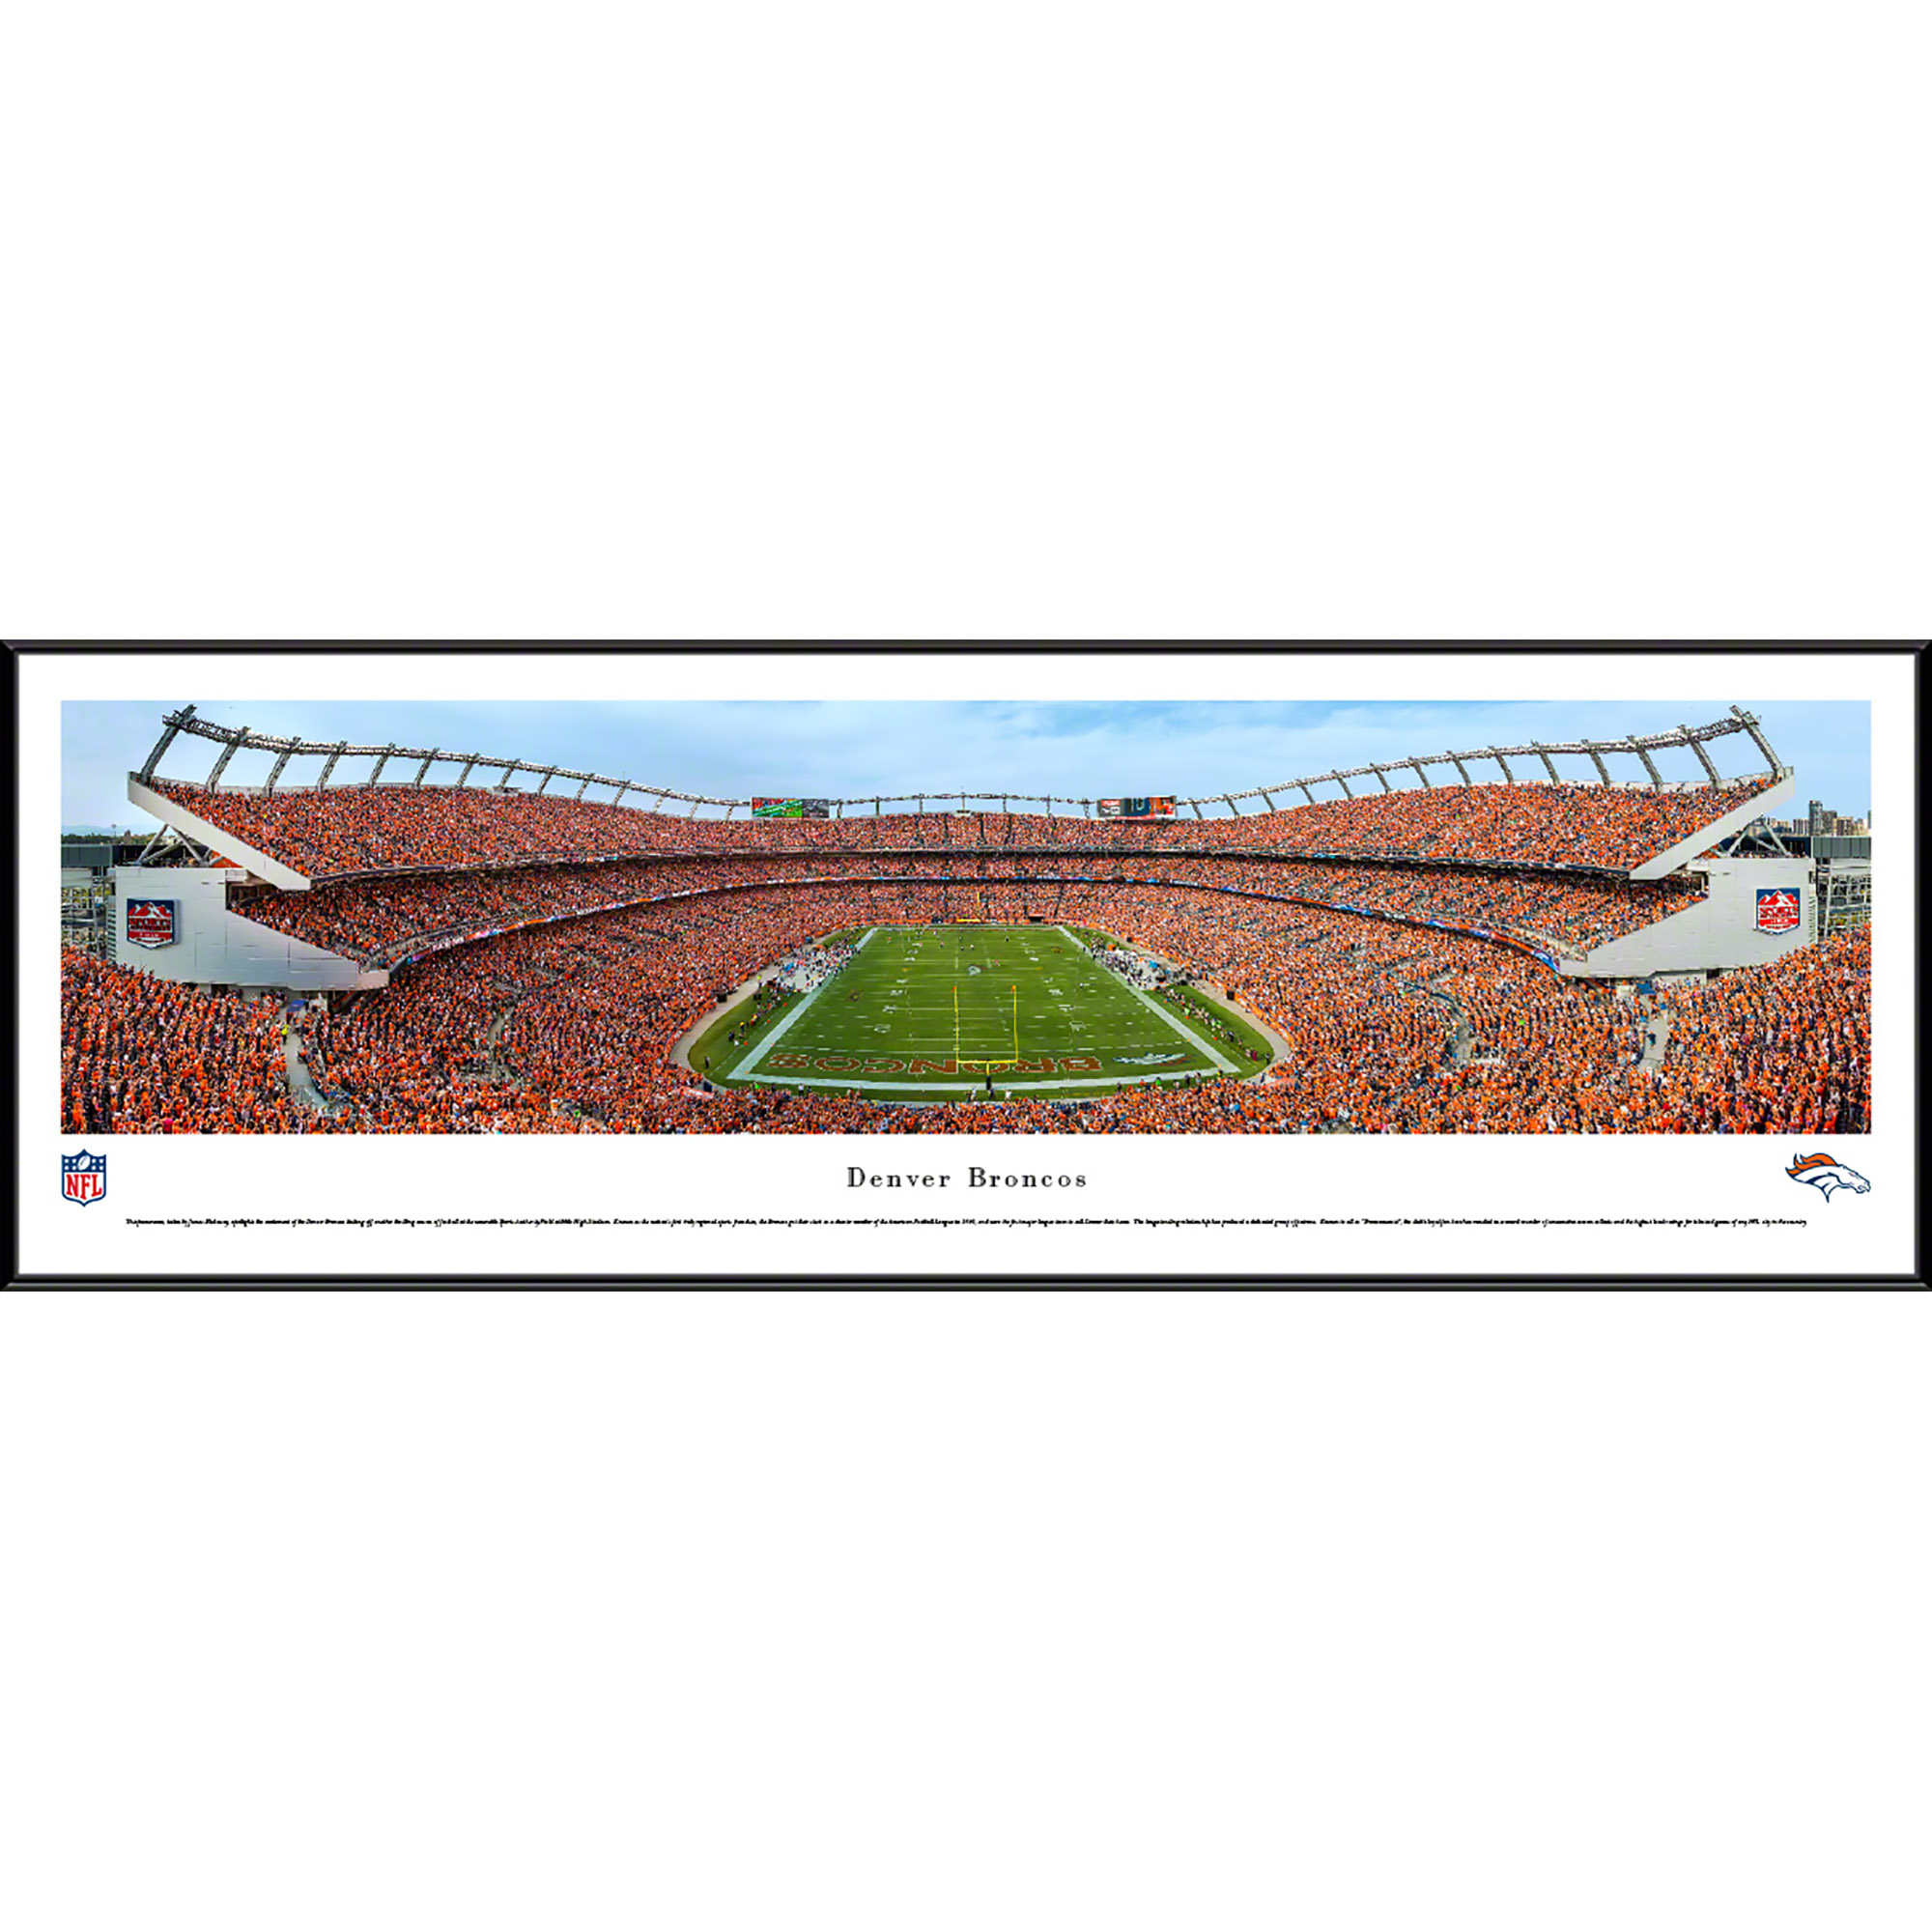 Denver Broncos - End Zone During A Night Game - Blakeway Panoramas NFL Print with Standard Frame